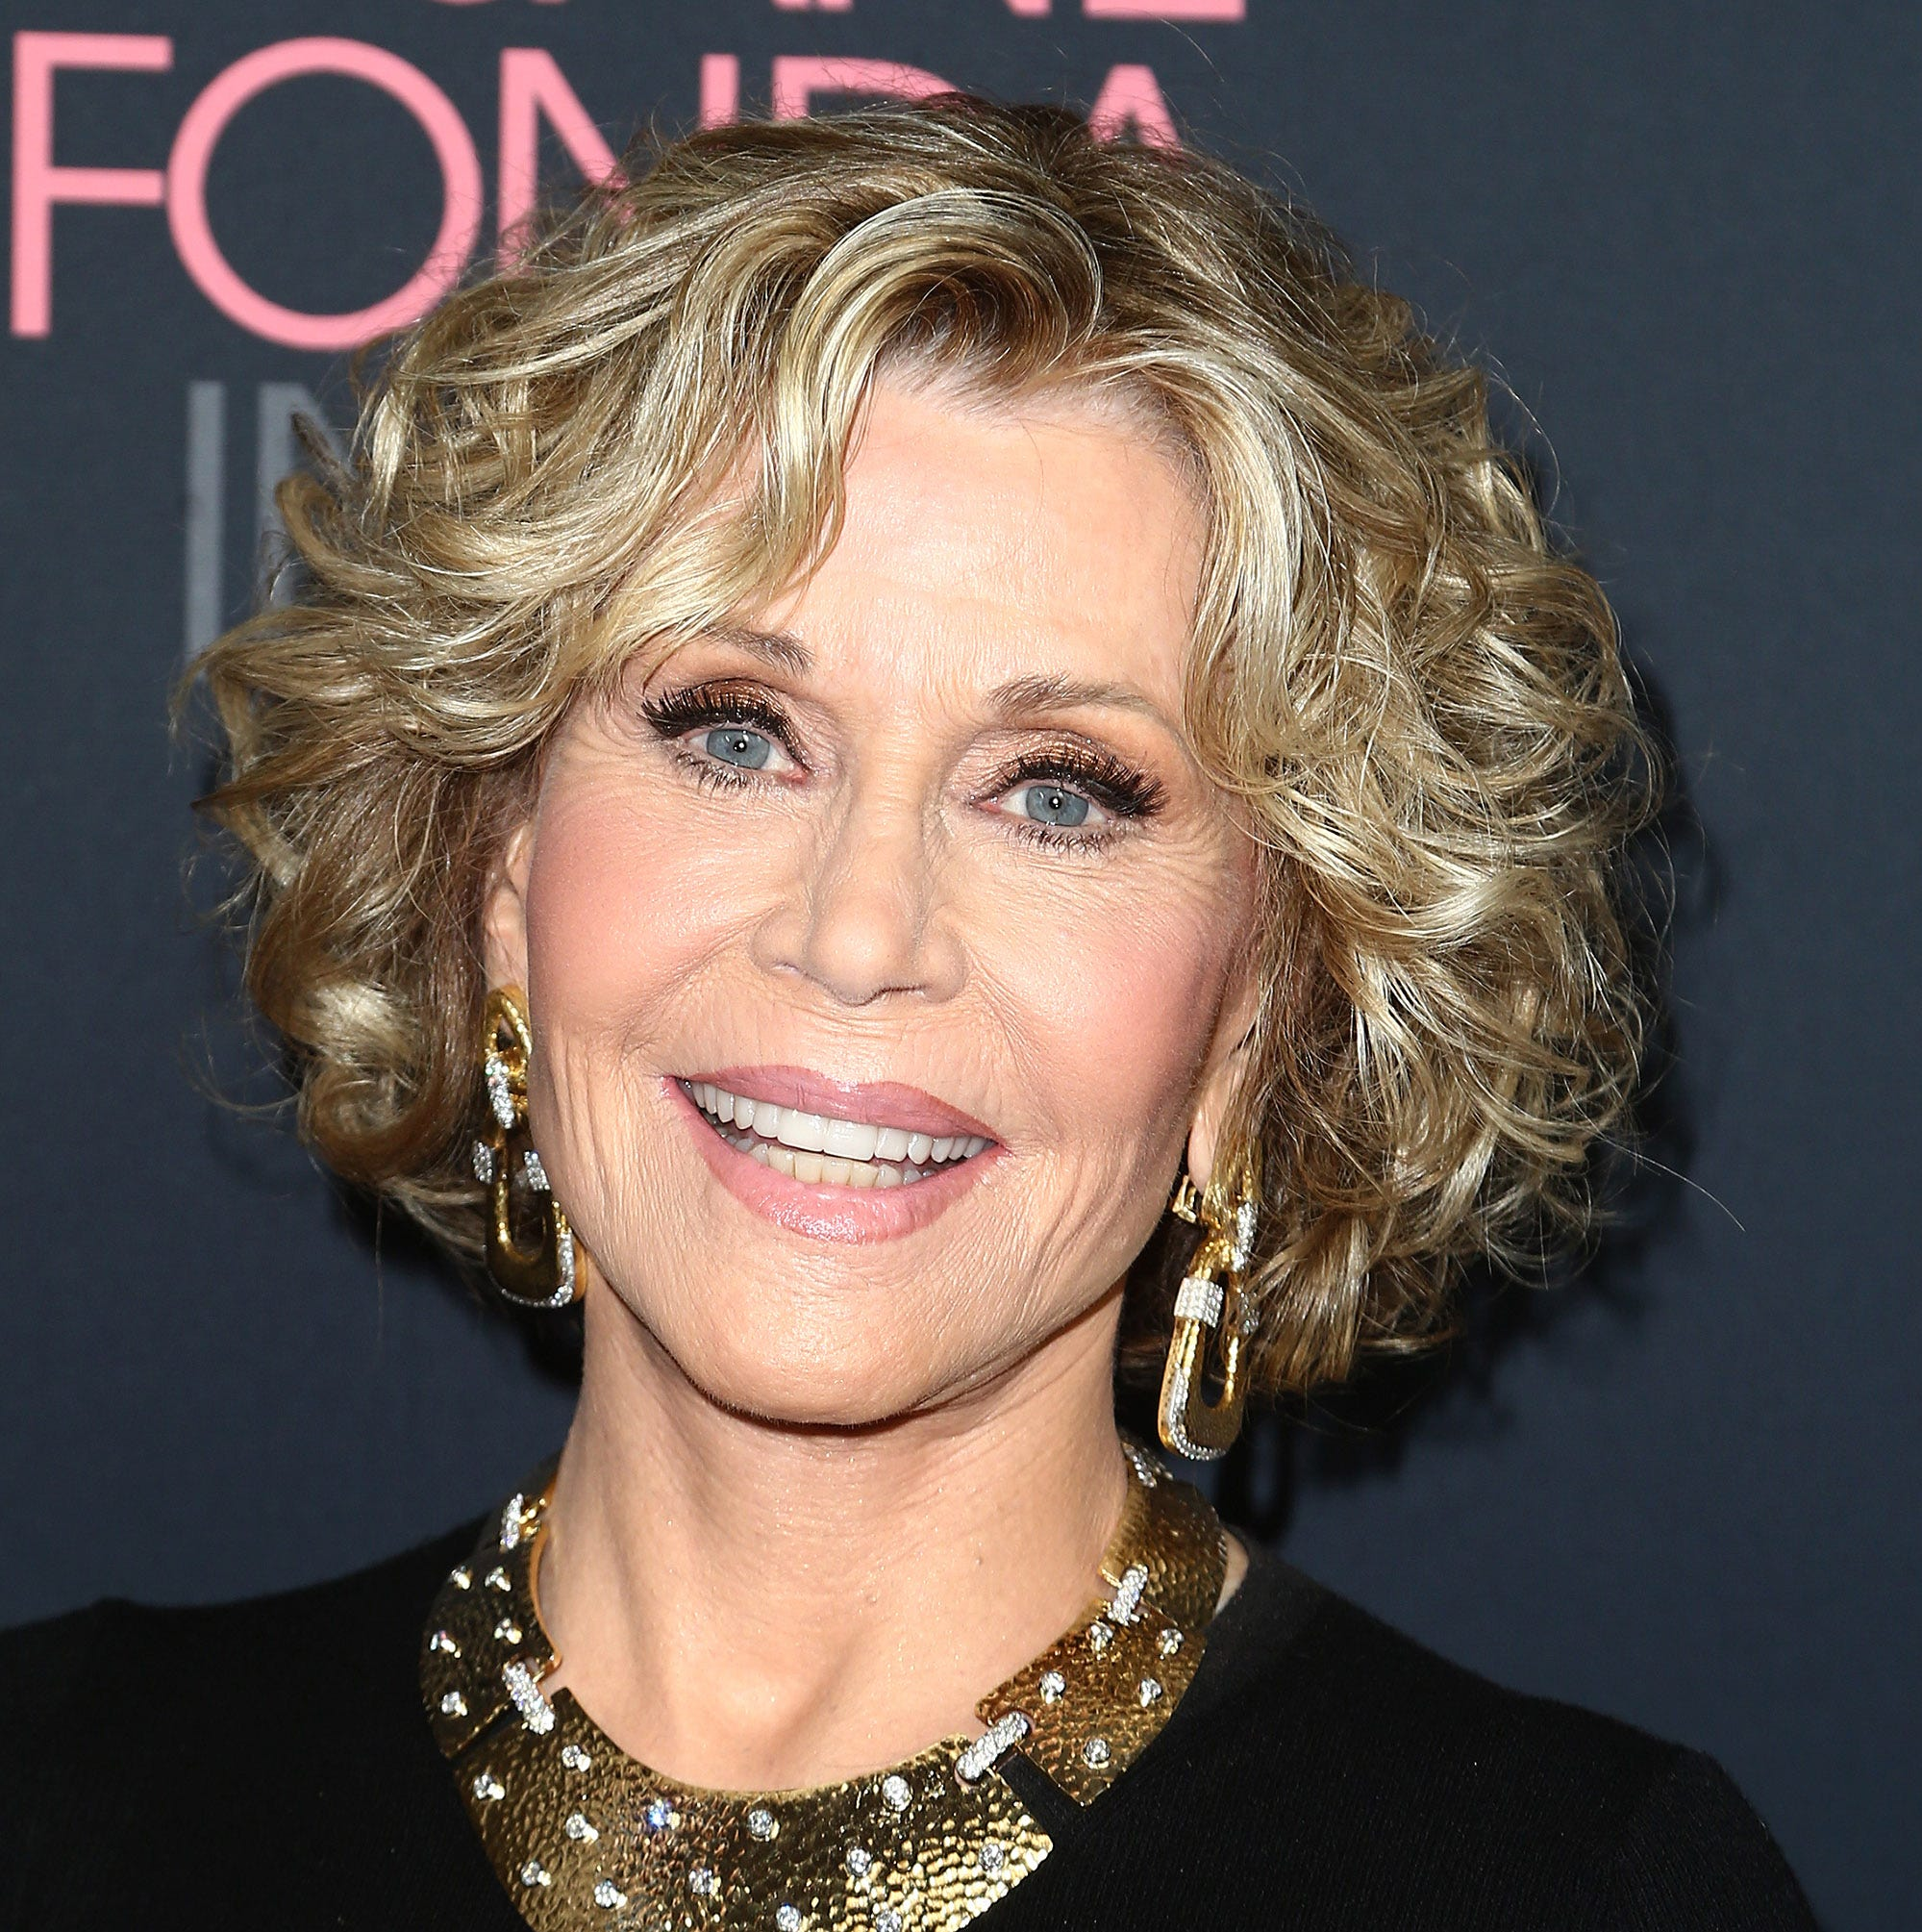 Jane Fonda says her dad, Henry, was a 'national monument' but not a good father